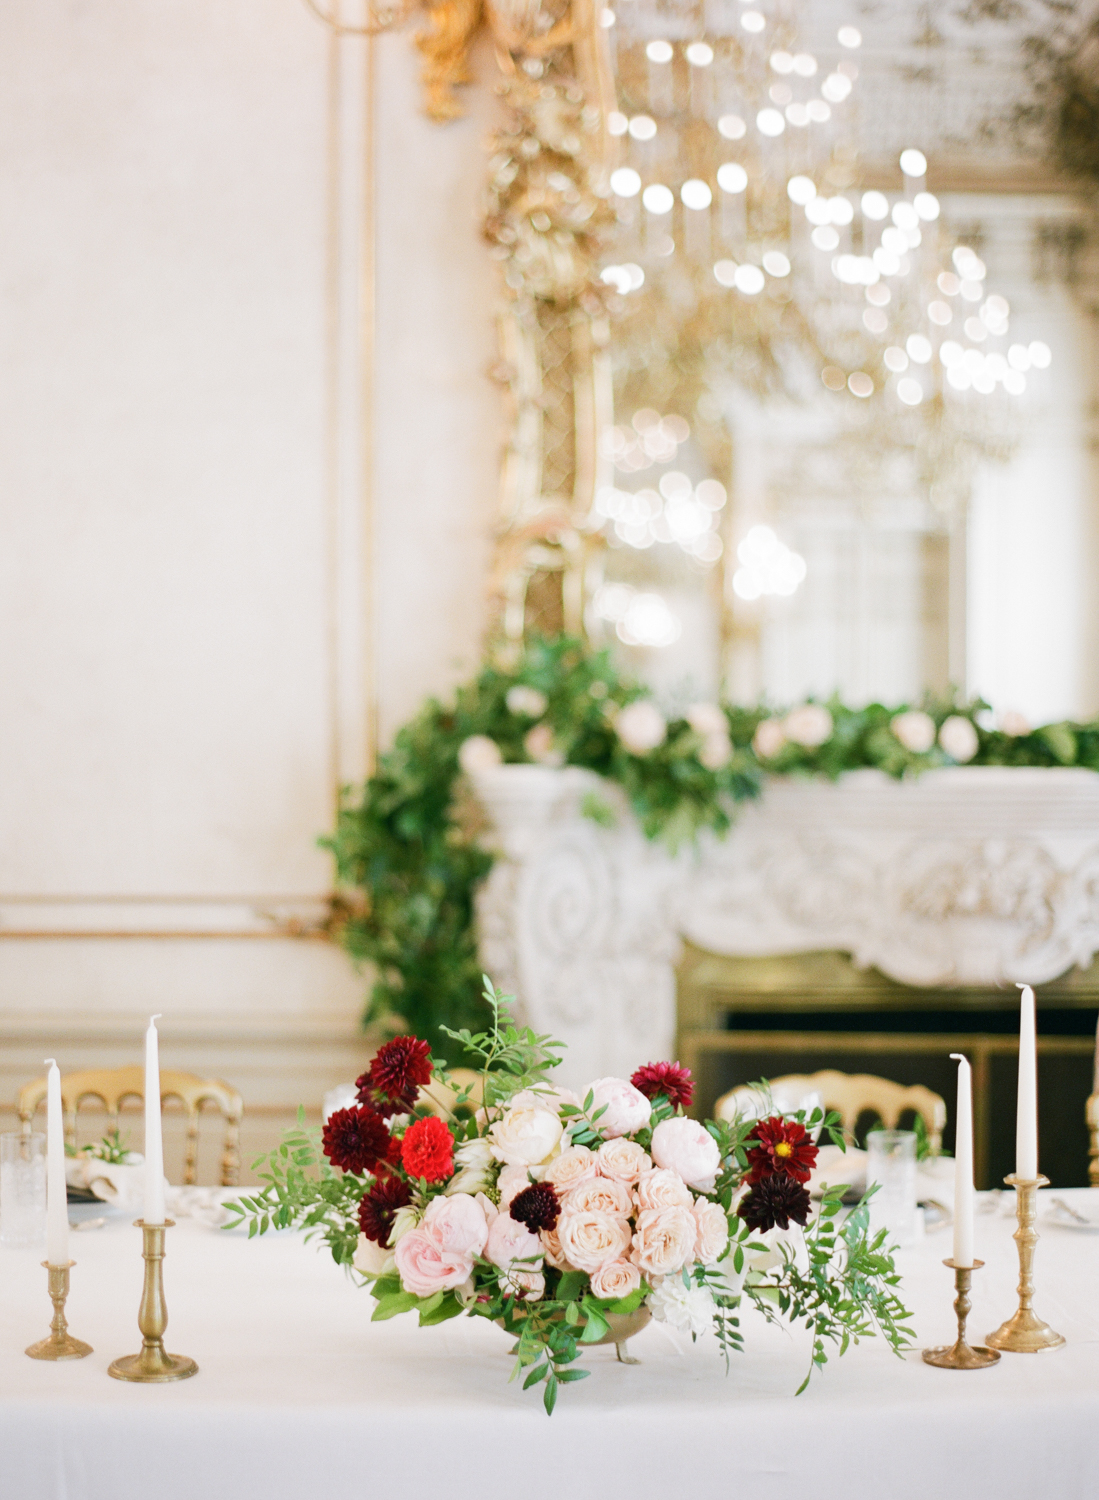 palais pallavicini wedding hotel imperial vienna wedding photographer nikol bodnarova photography 161.JPG